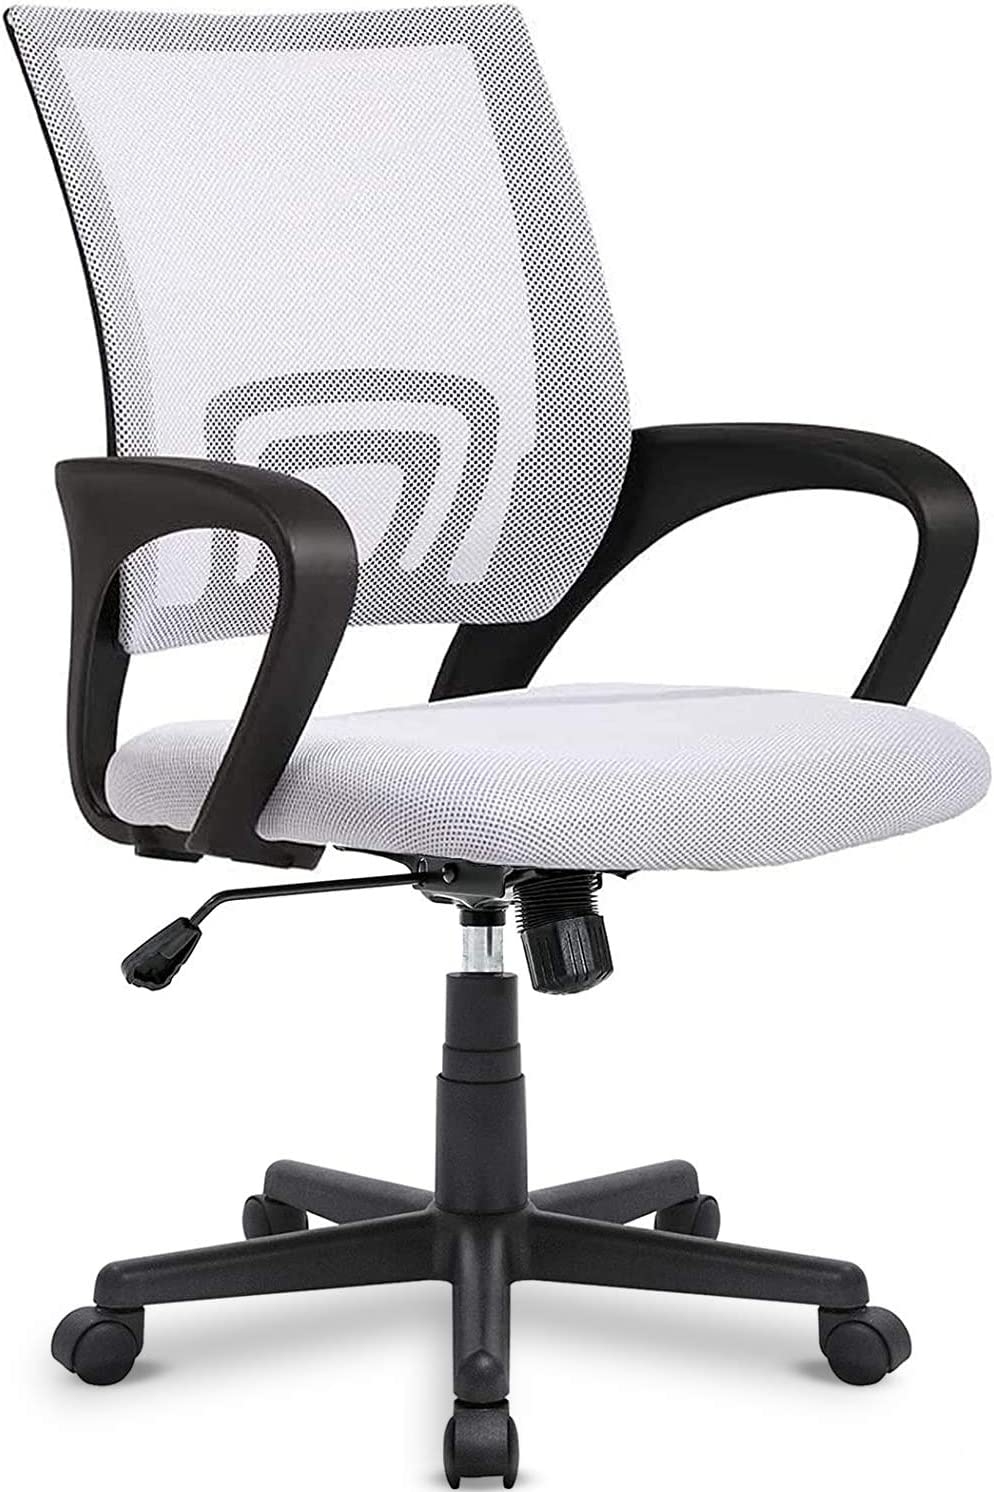 OFIKA 300LBS Office Chair Ergonomic Desk Chair, Adjustable Task Chair, Lumbar Back Support, Mesh Computer Chair, Rolling Swivel and Armrest, Modern Executive Home Office Desk Chairs Chairs (White)